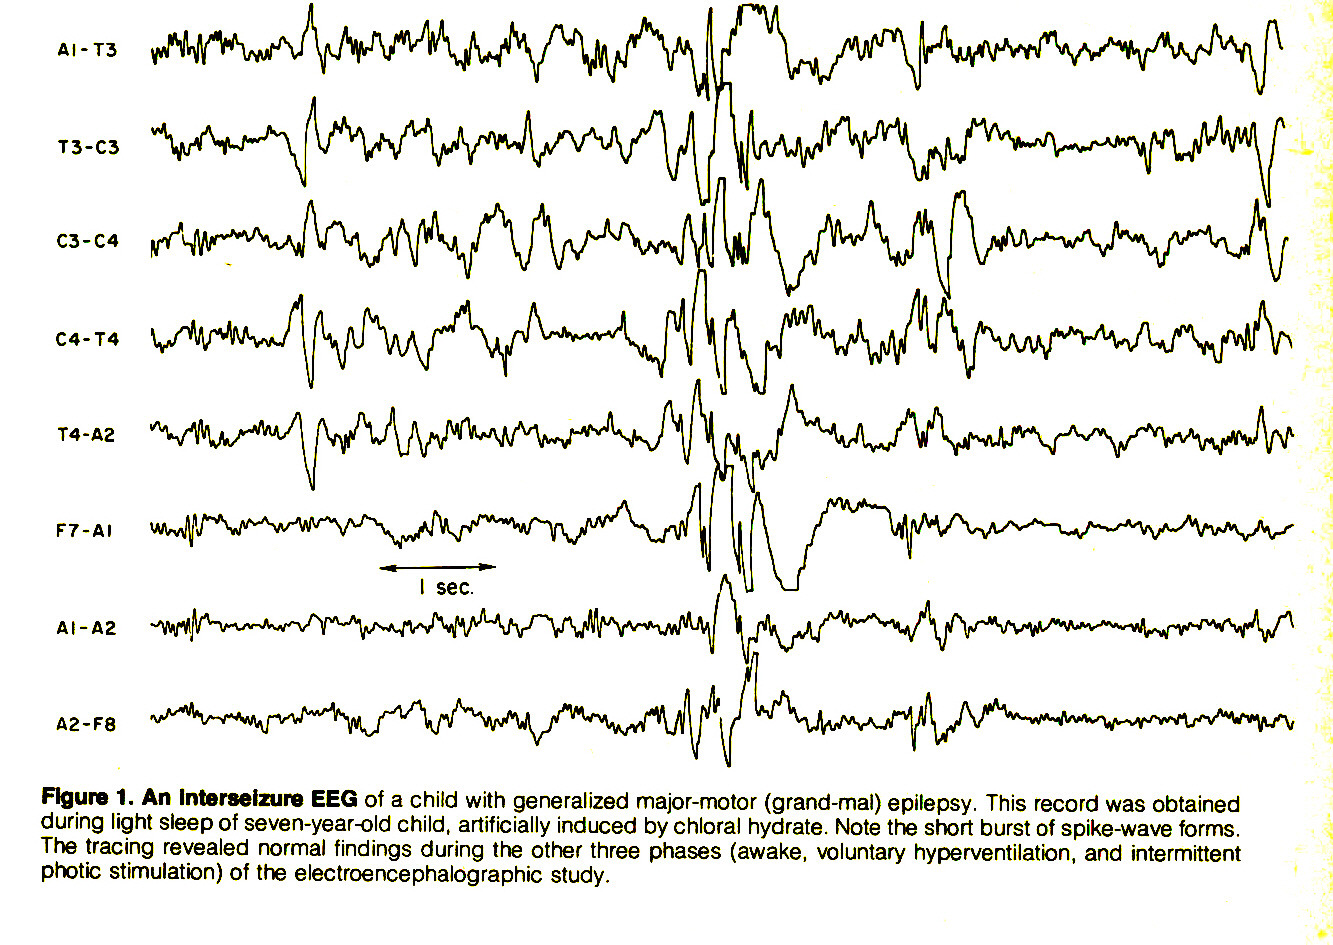 Figure 1. An Interseizure EEG of a child with generalized major-motor (grand-mal) epilepsy. This record was obtained during light sleep ot seven-year-old child, artificially induced by chloral hydrate. Note trie short burst of spike-wave forms. The tracing revealed normal findings during the other three phases (awake, voluntary hyperventilation, and intermittent photic stimulation) of the electroencephalographic study.